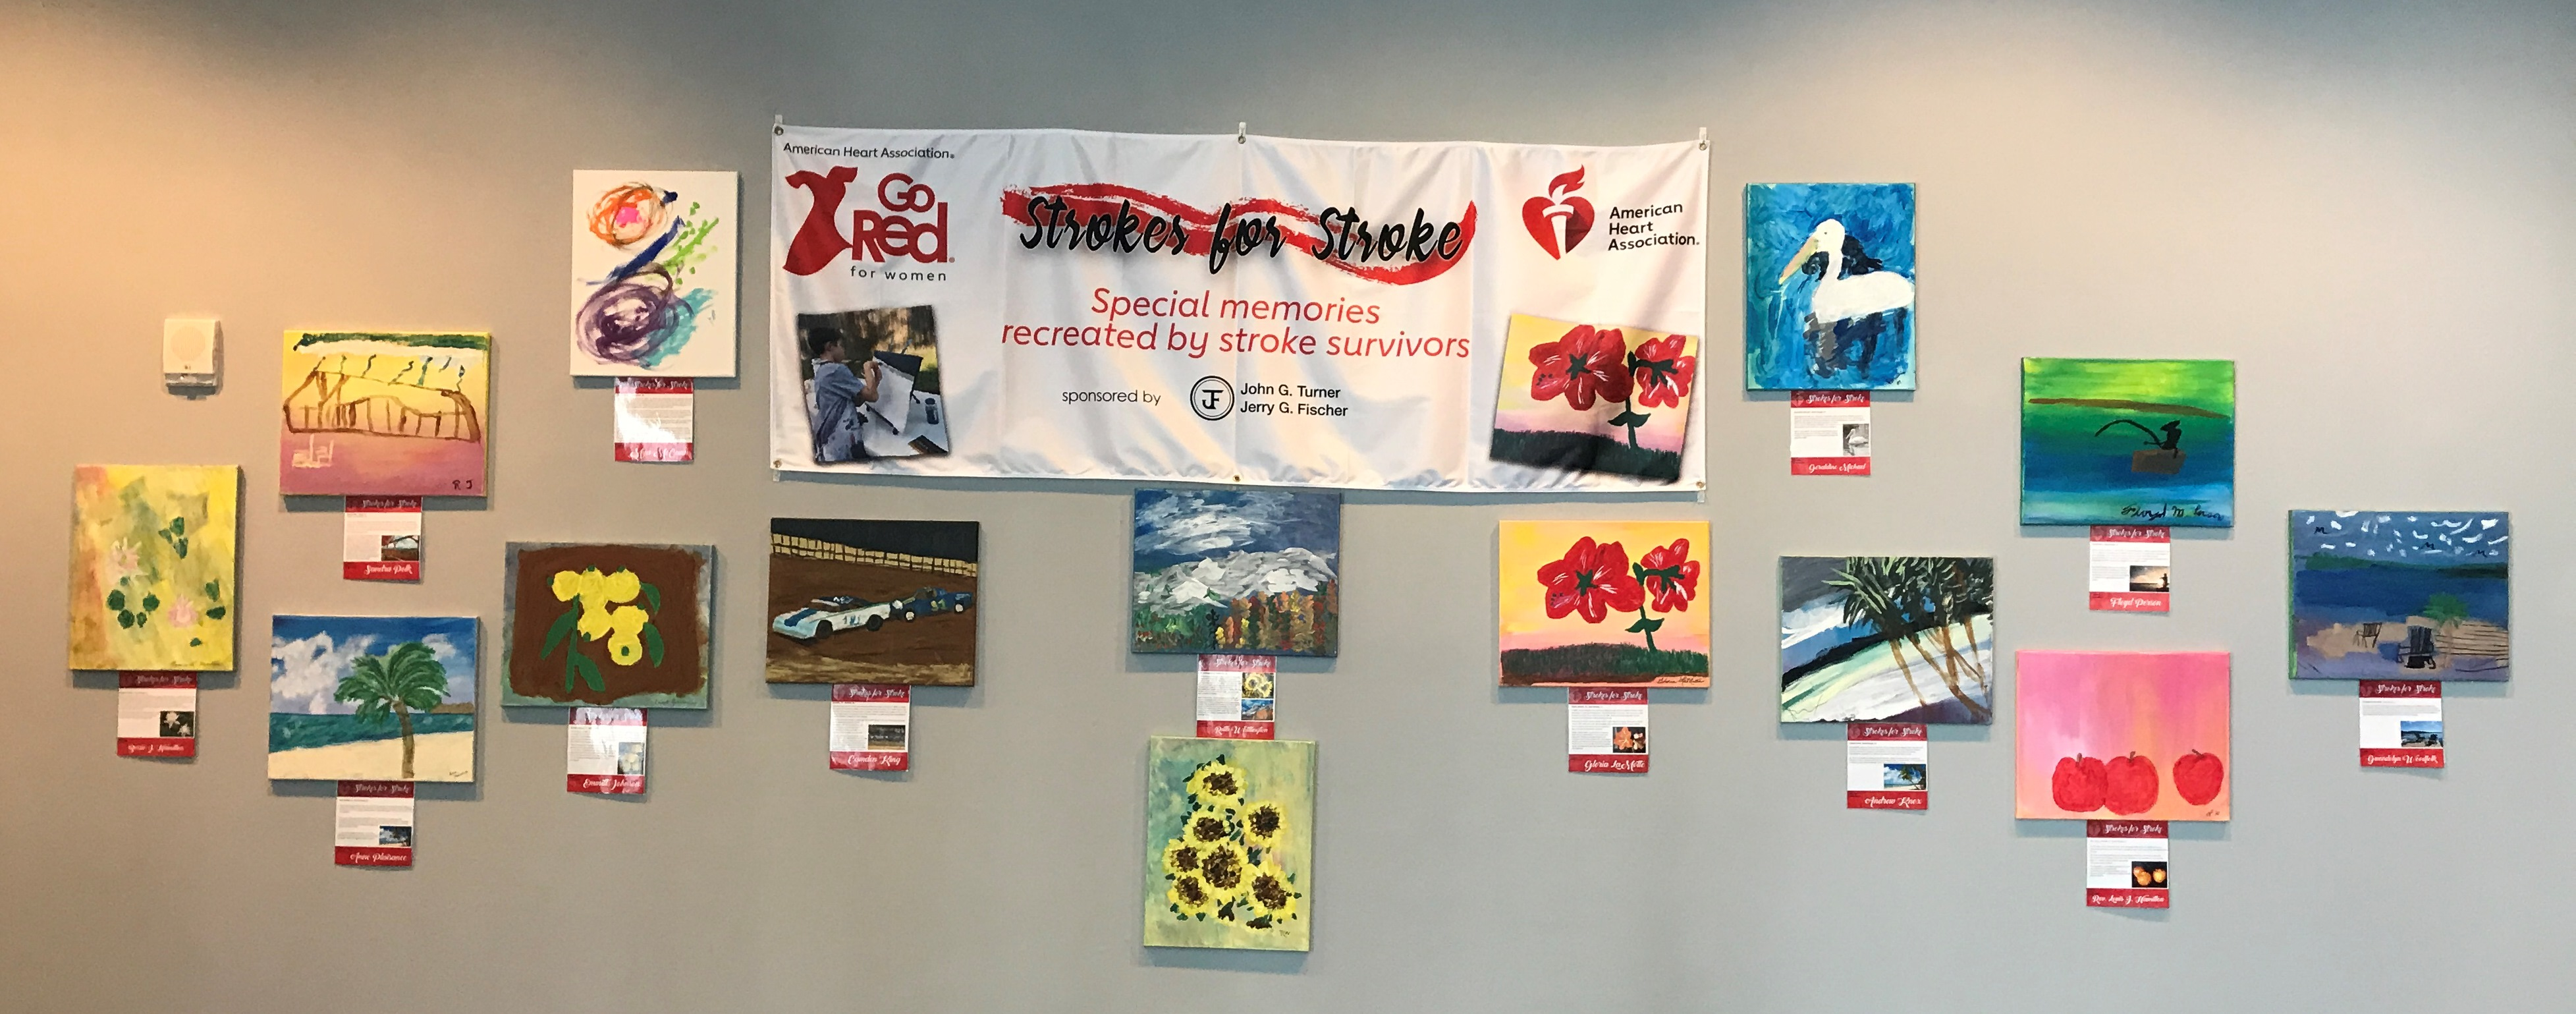 AHA's Strokes for Stroke Traveling Art Show at Lane